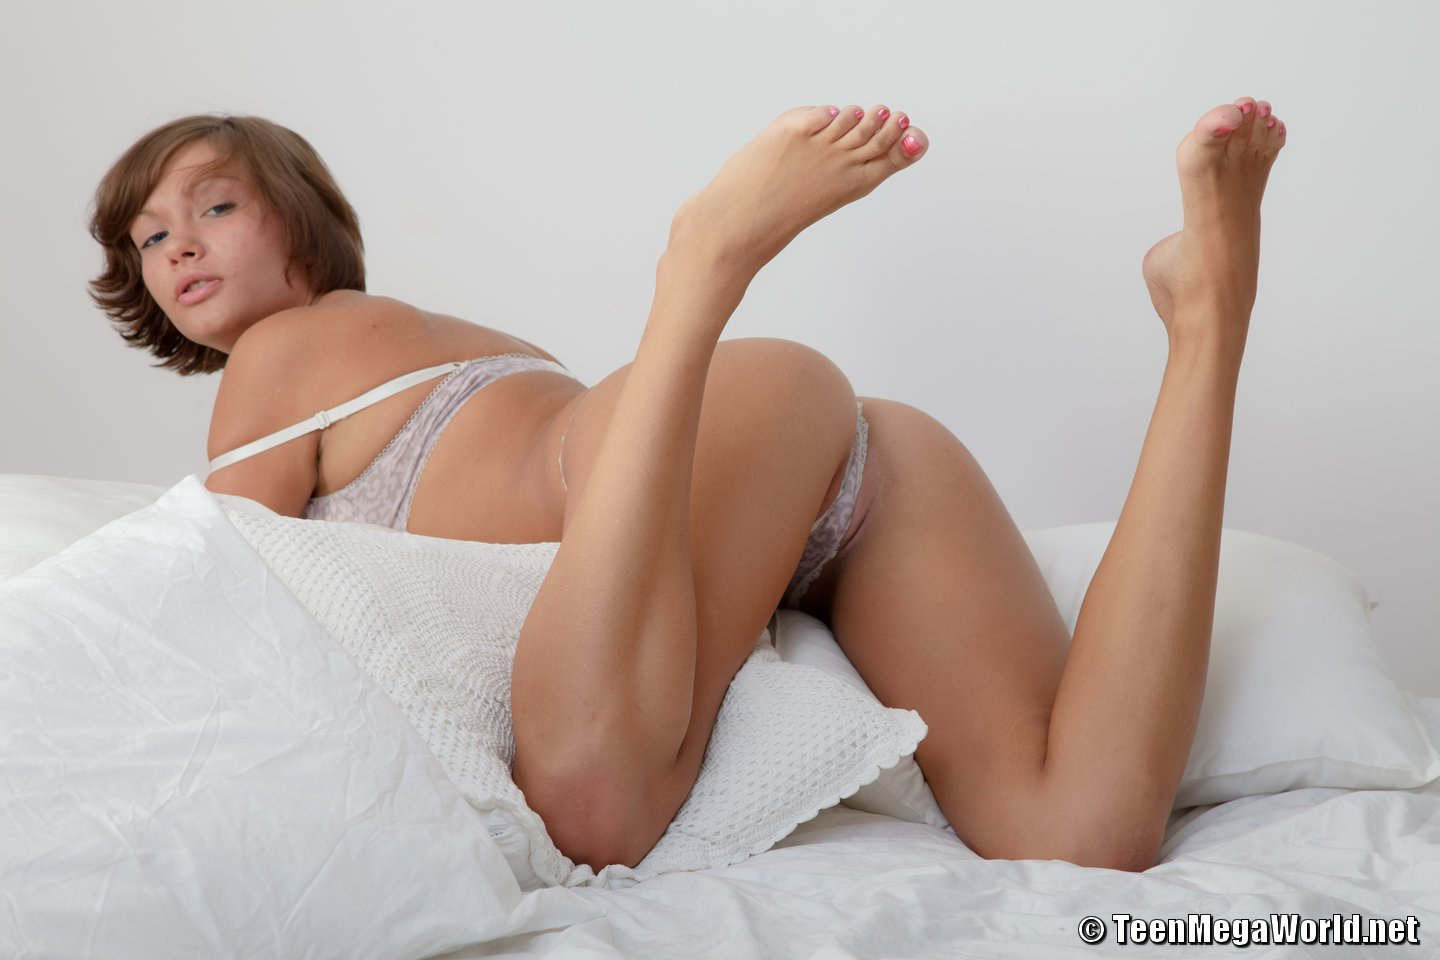 Meddie Masturbation Pics Barefoot On Bed Removing Lingerie To Be Nude